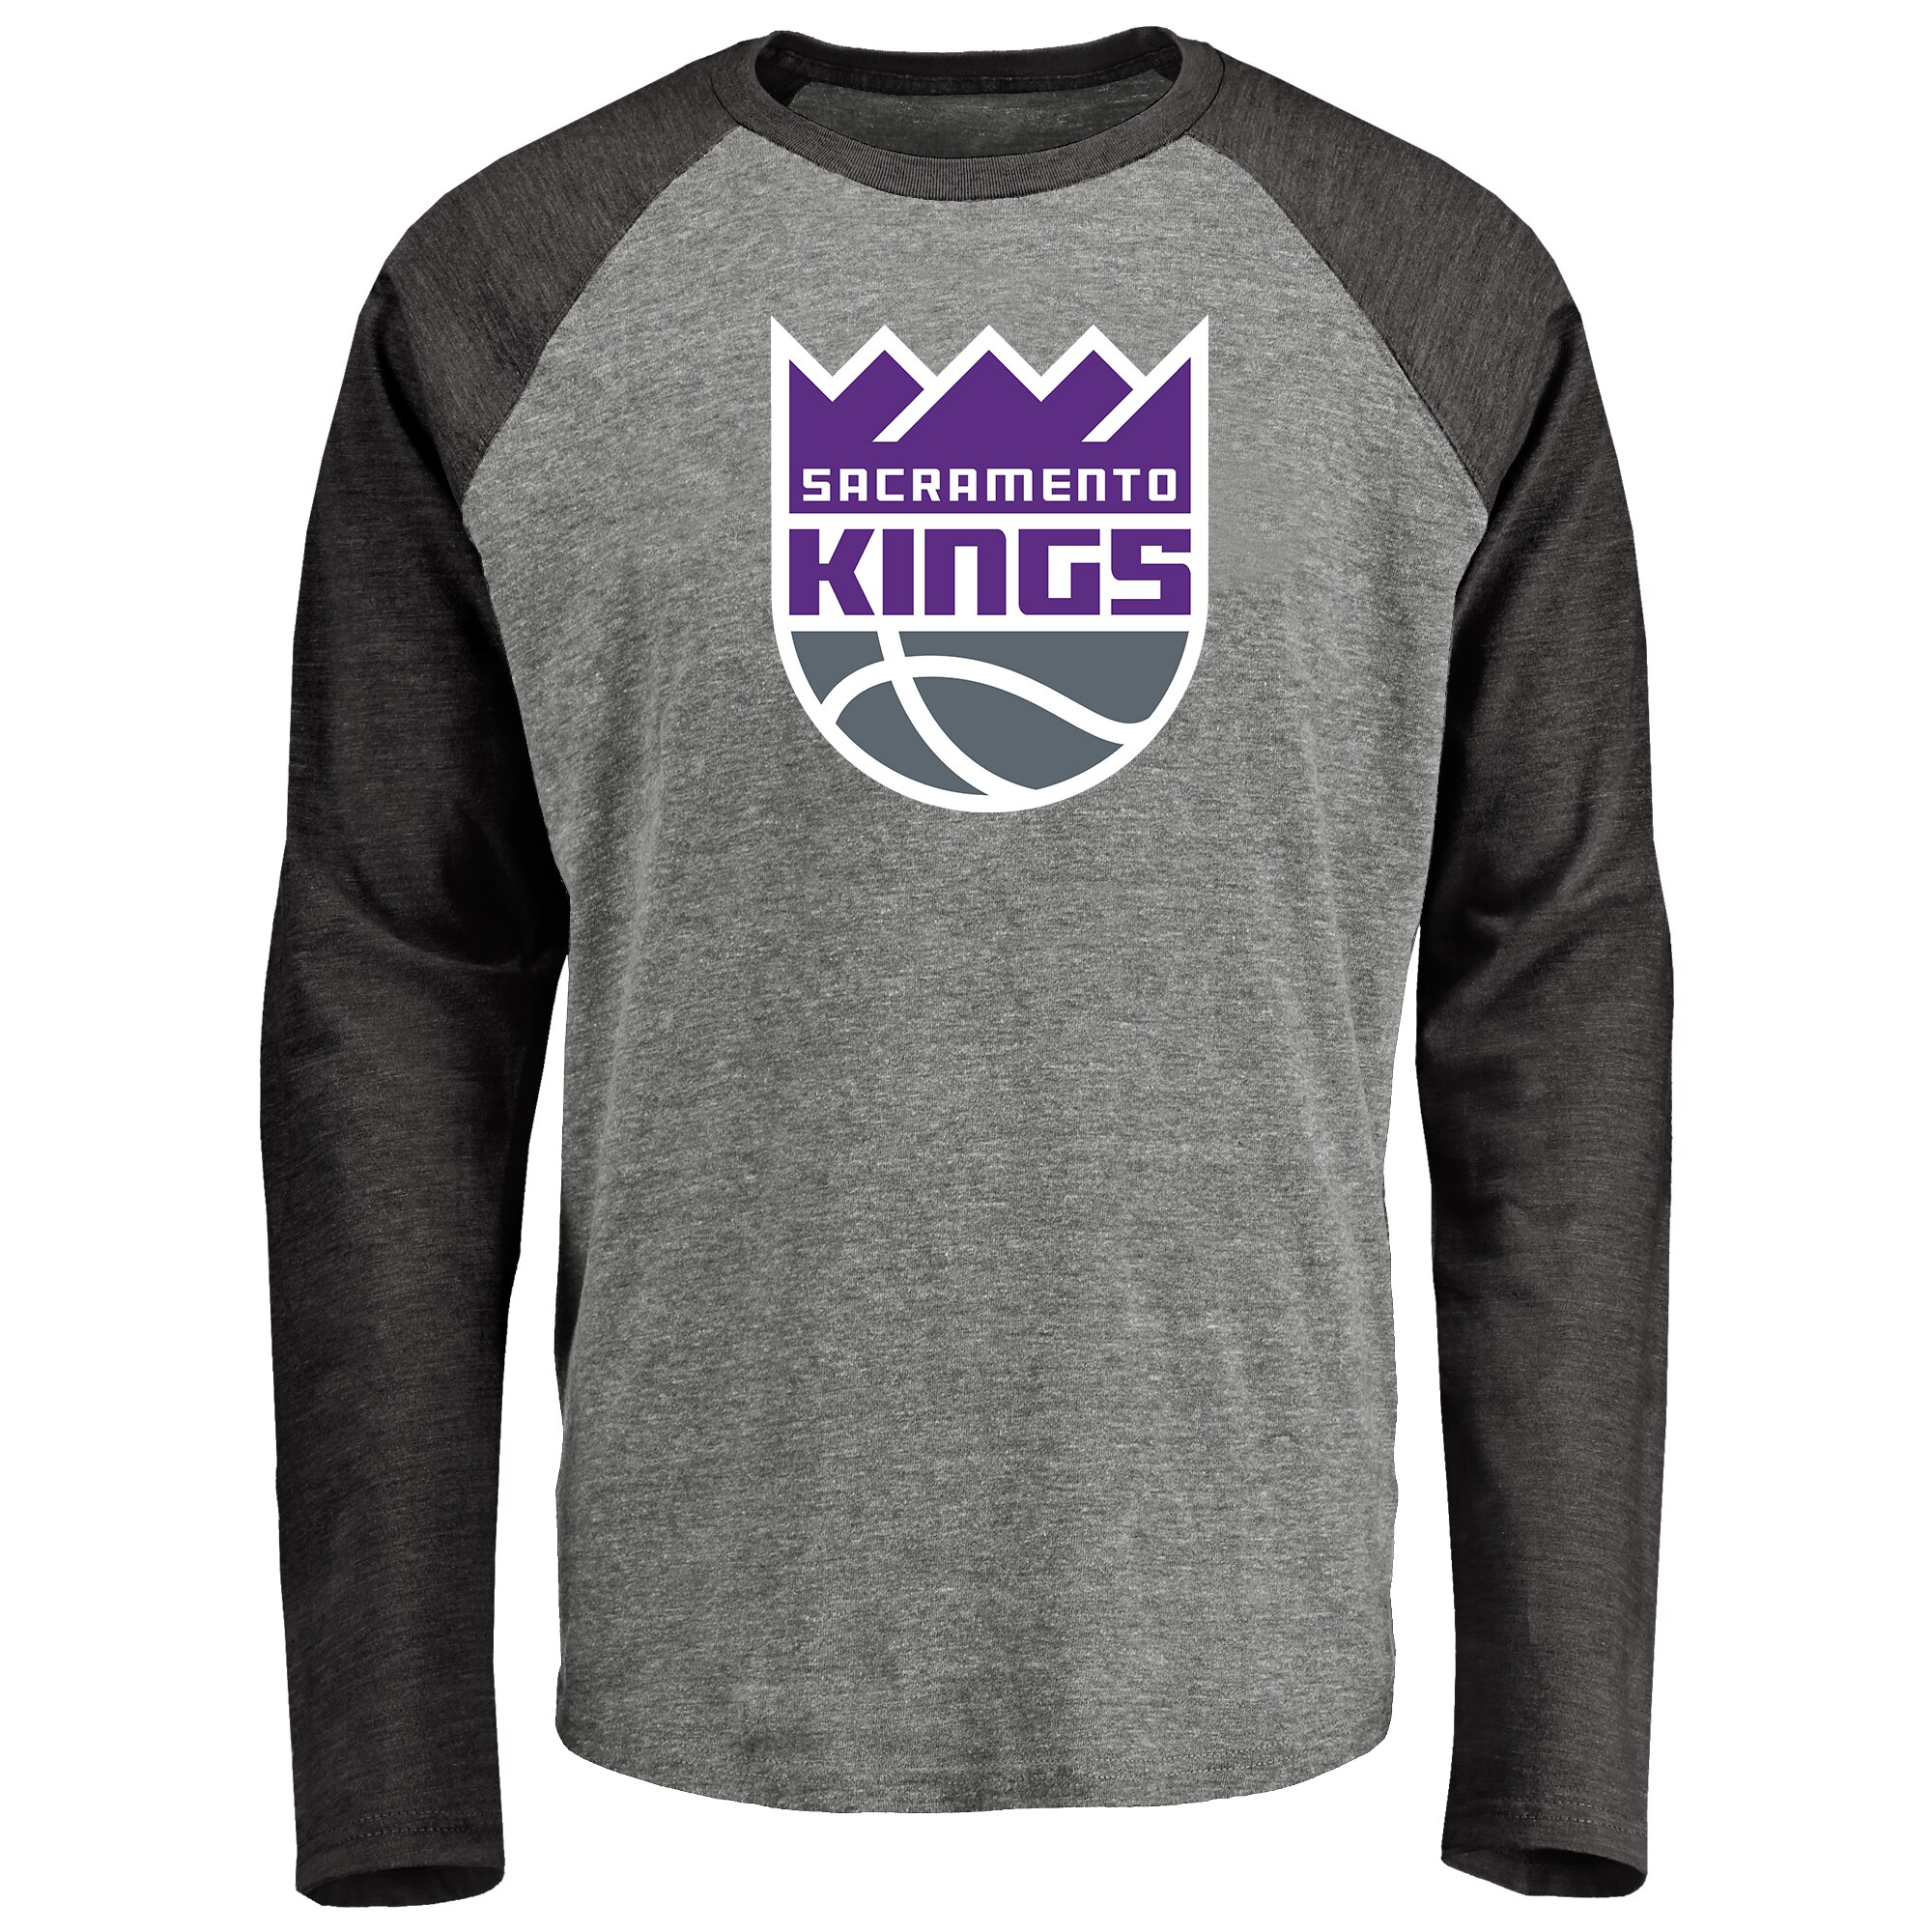 Sacramento Kings Fanatics Branded Primary Logo Raglan Long Sleeve T-Shirt - Heathered Gray